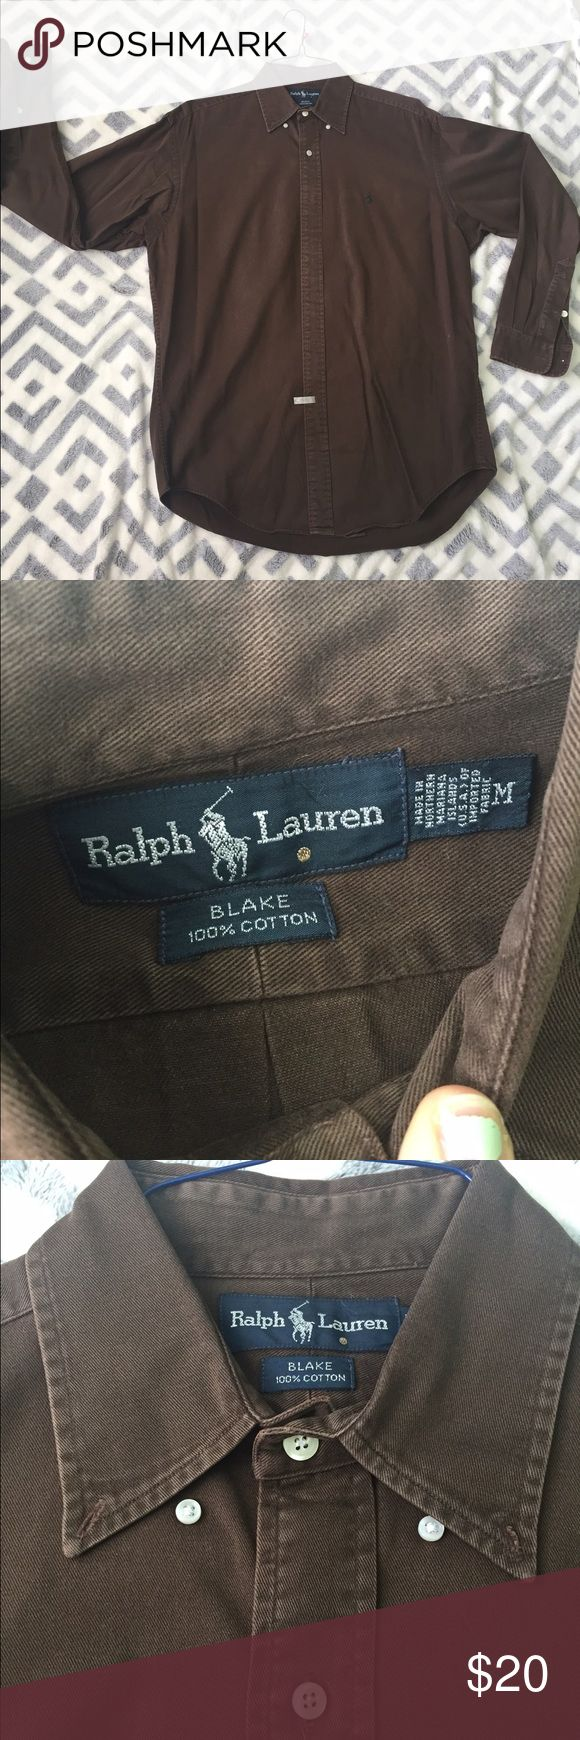 Brown polo dress shirt Polo dress shirt! Button up, collar buttons down. Great condition, just dry cleaned Polo by Ralph Lauren Shirts Dress Shirts